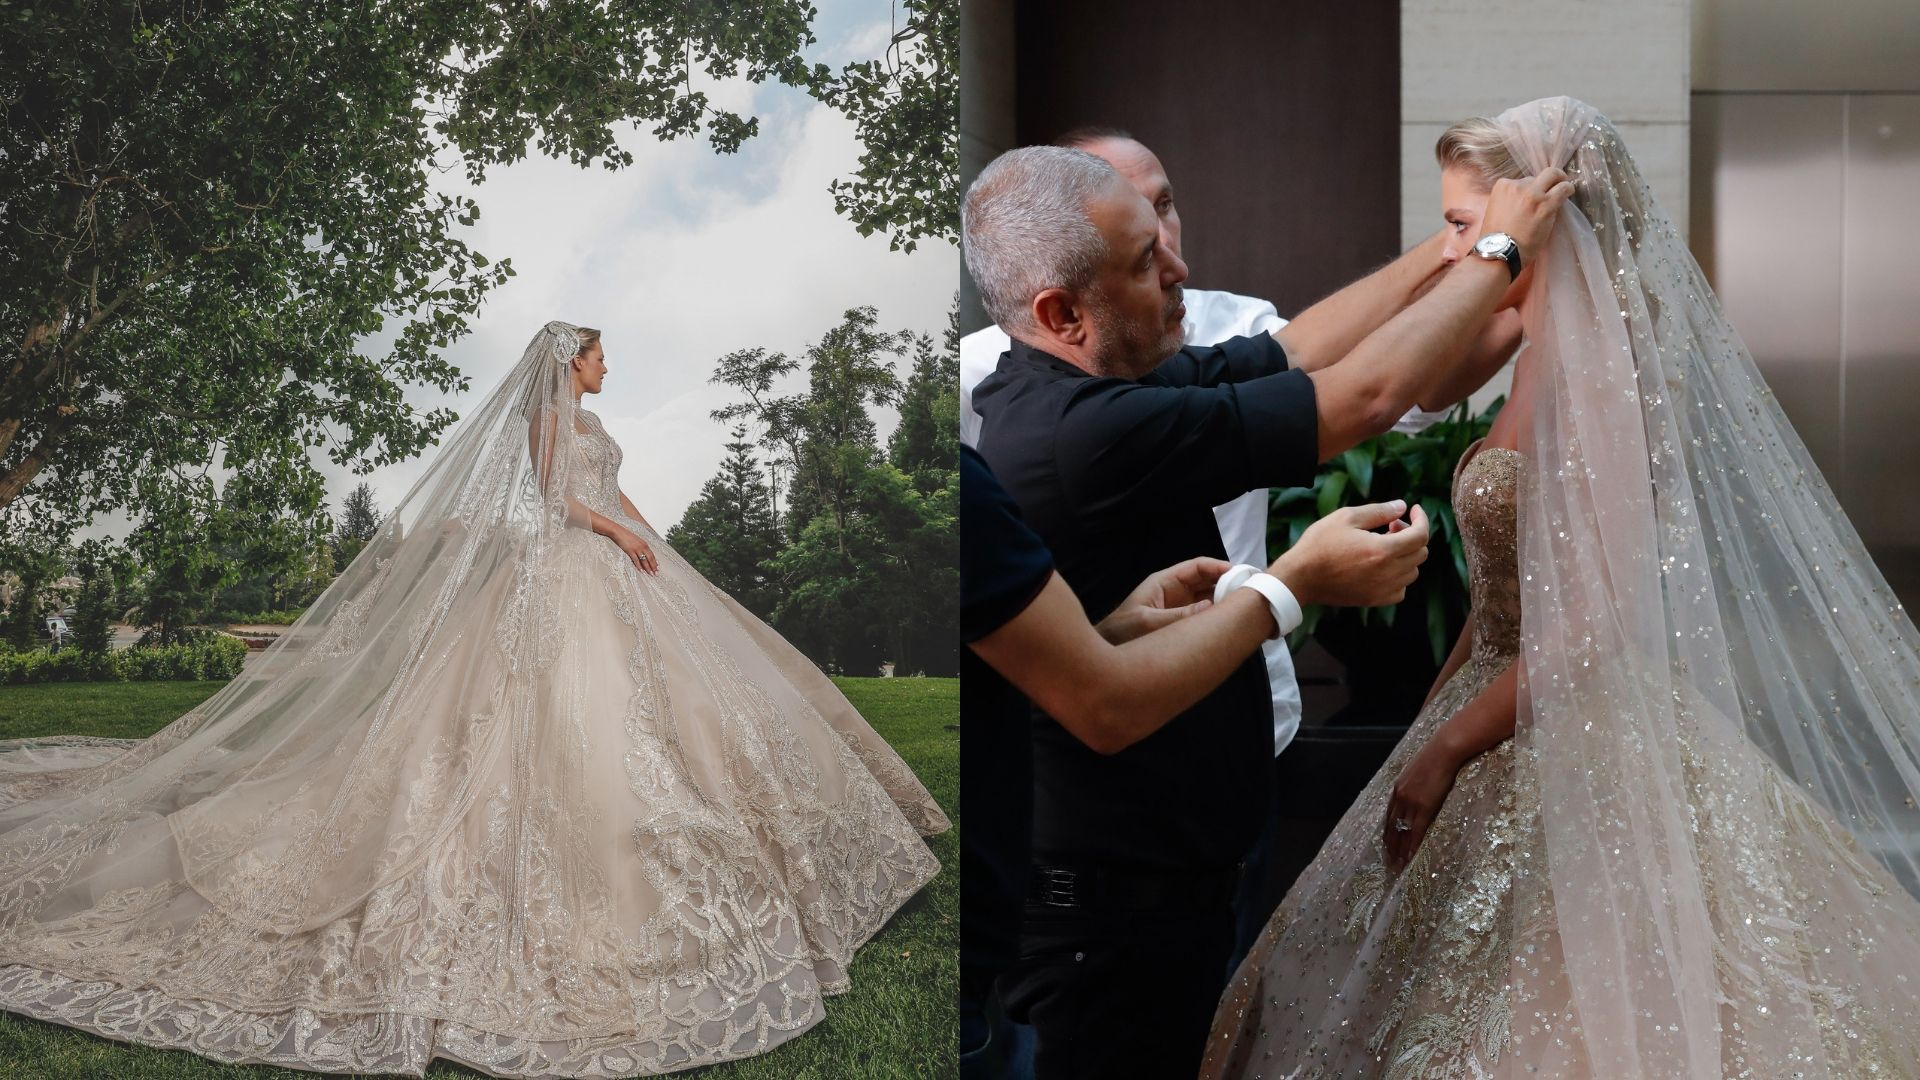 Christina Mourad S Elie Saab Wedding Gown From Every Angle Harper S Bazaar Arabia